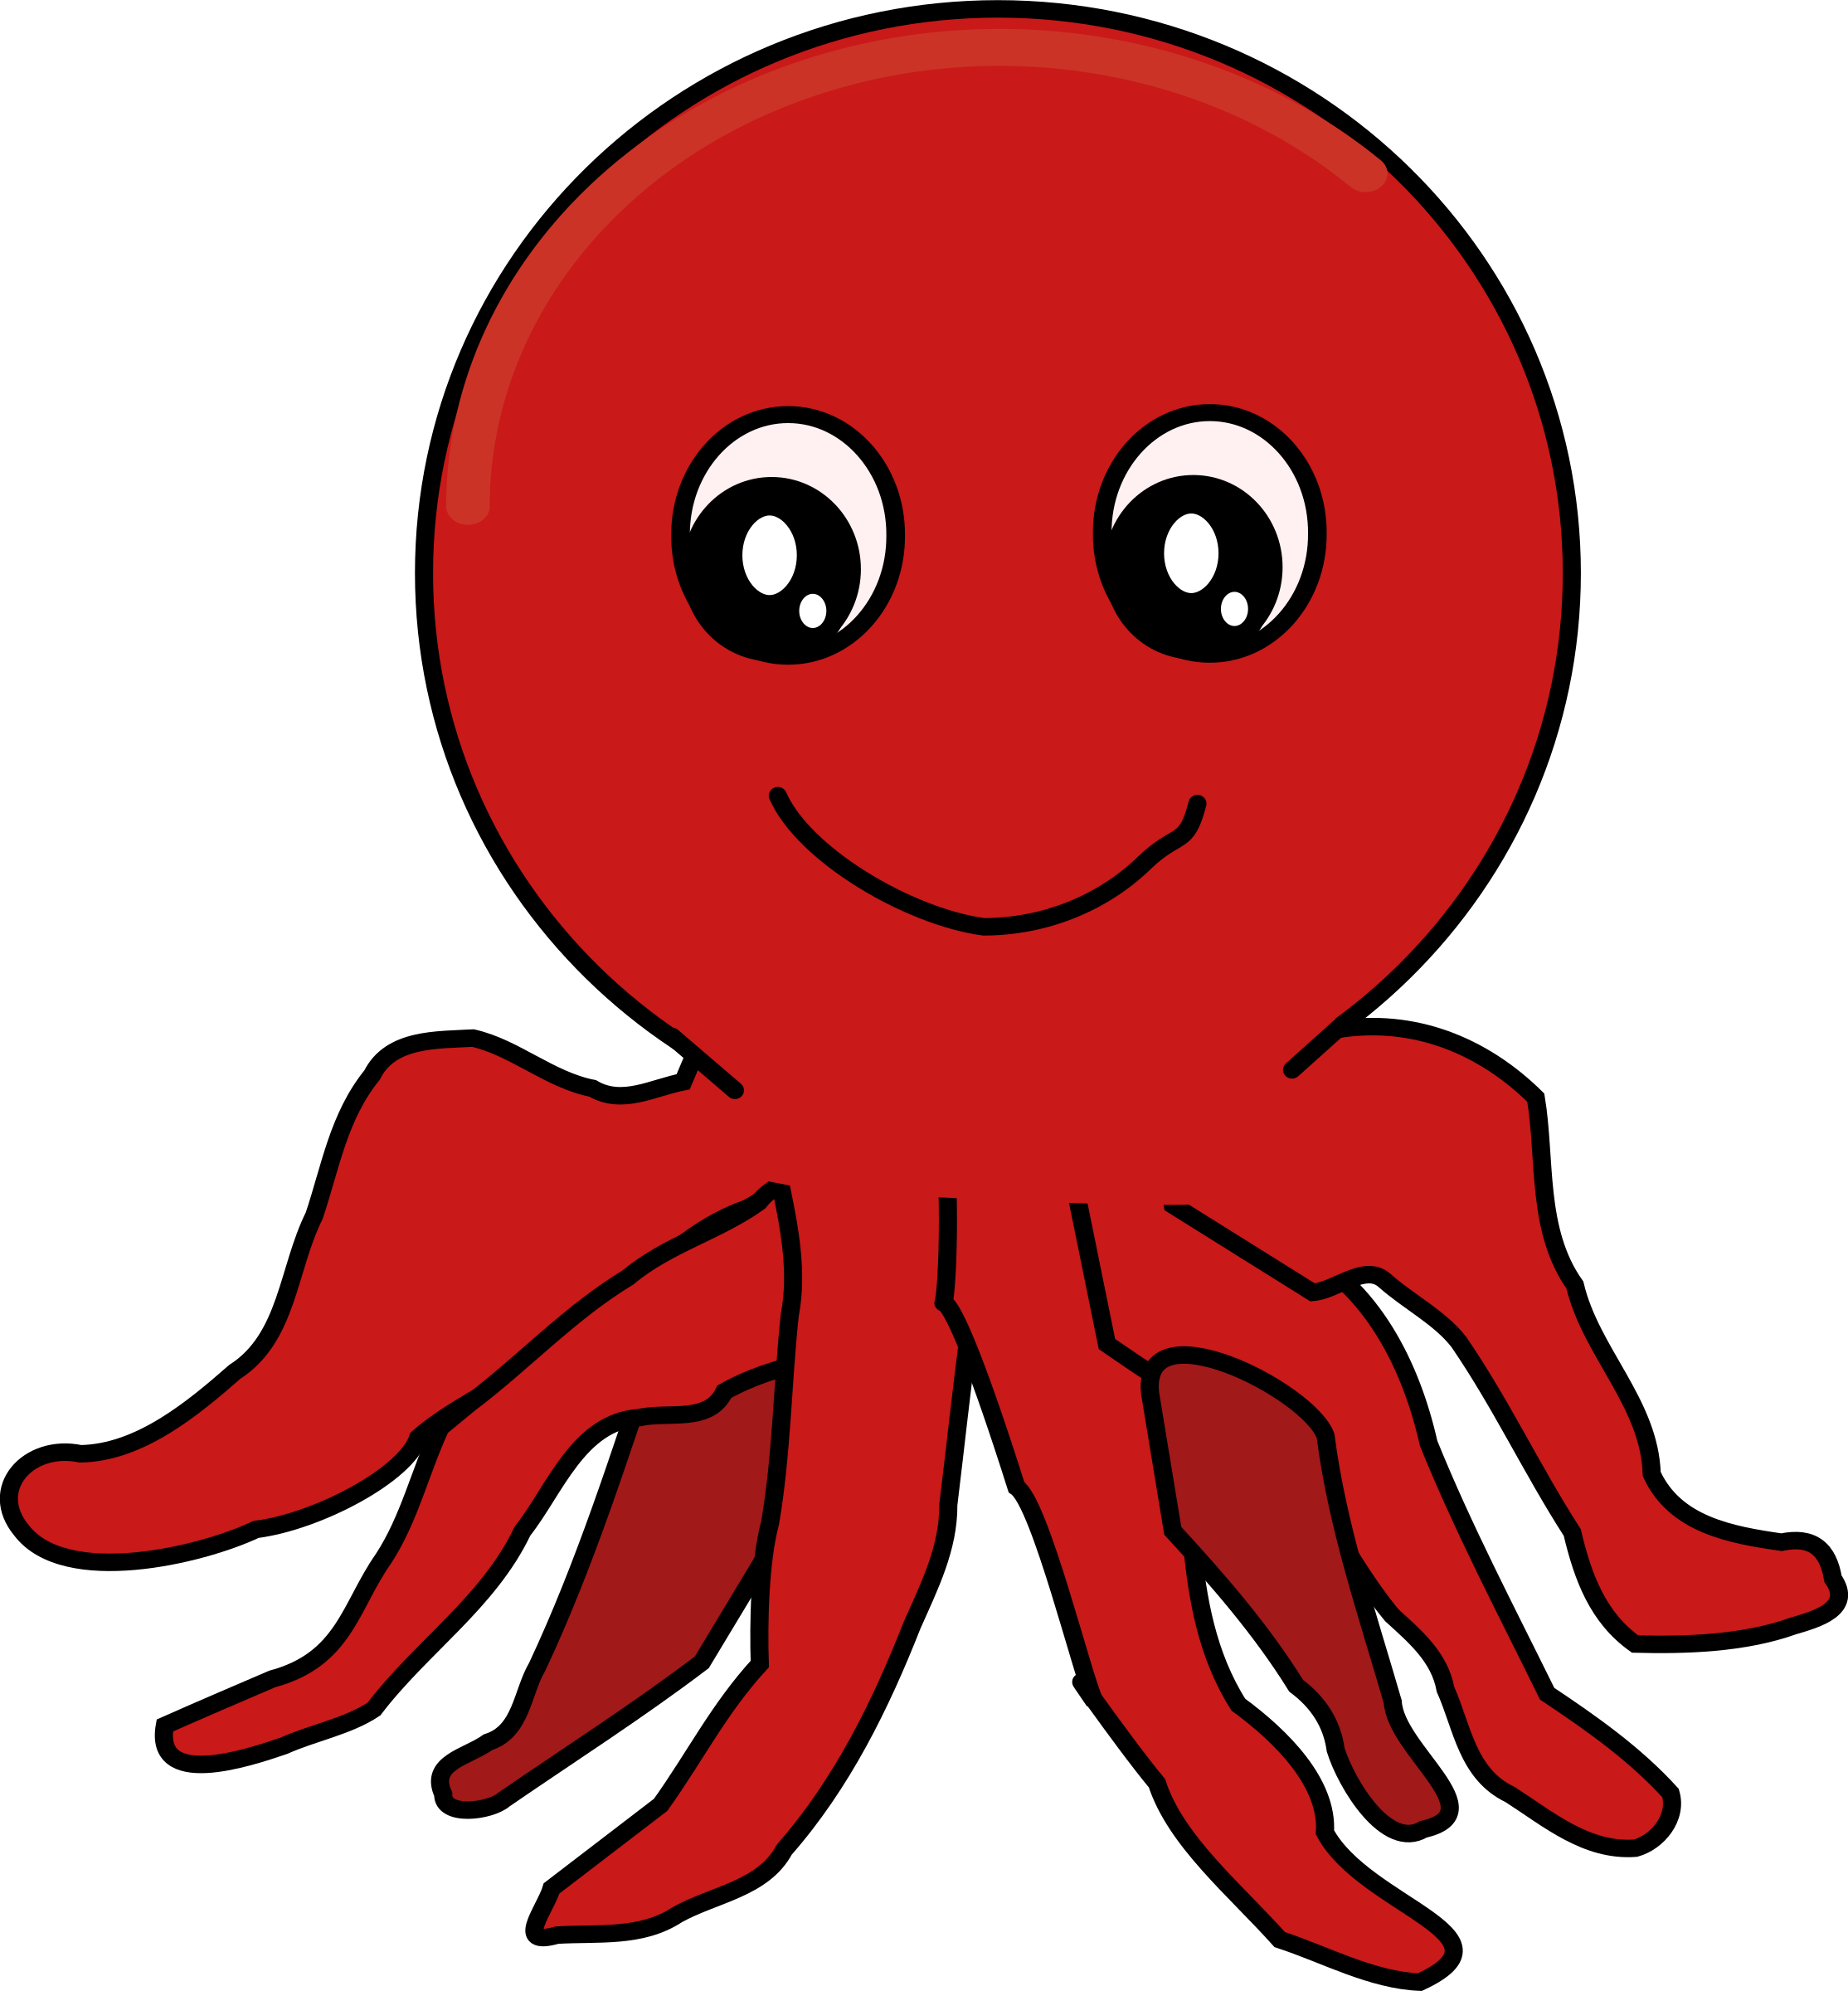 For download free images. Clipart octopus head